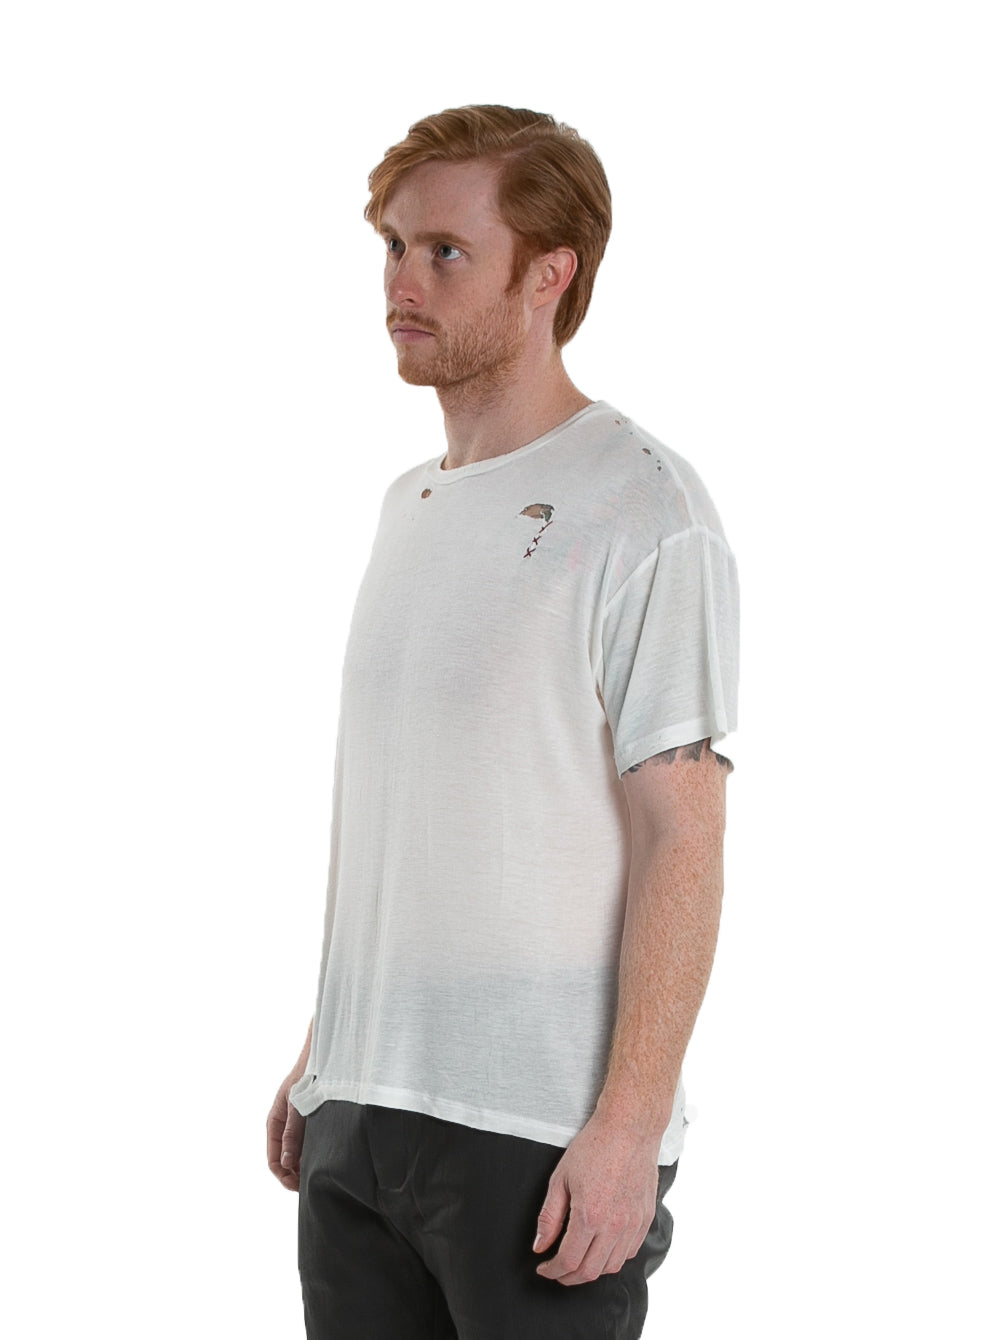 Side of male model wearing Hand-stitched Tee in Ivory